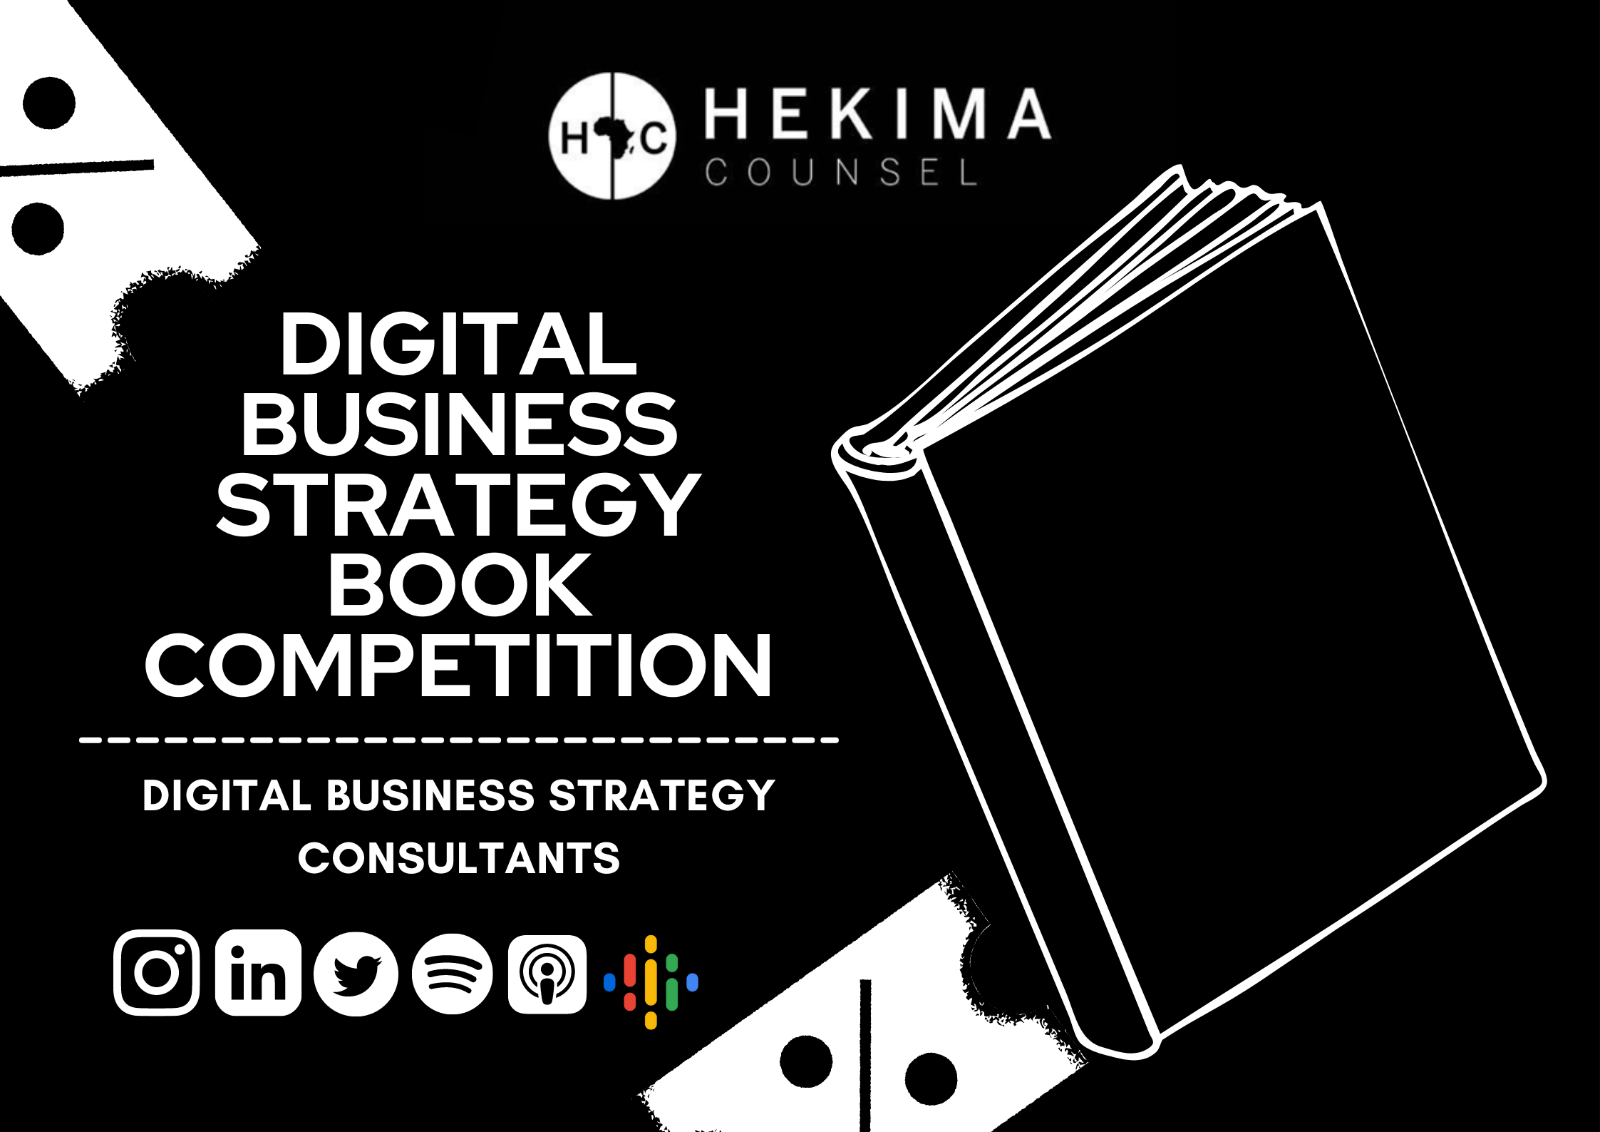 [Book Competition] Digital Business Strategy